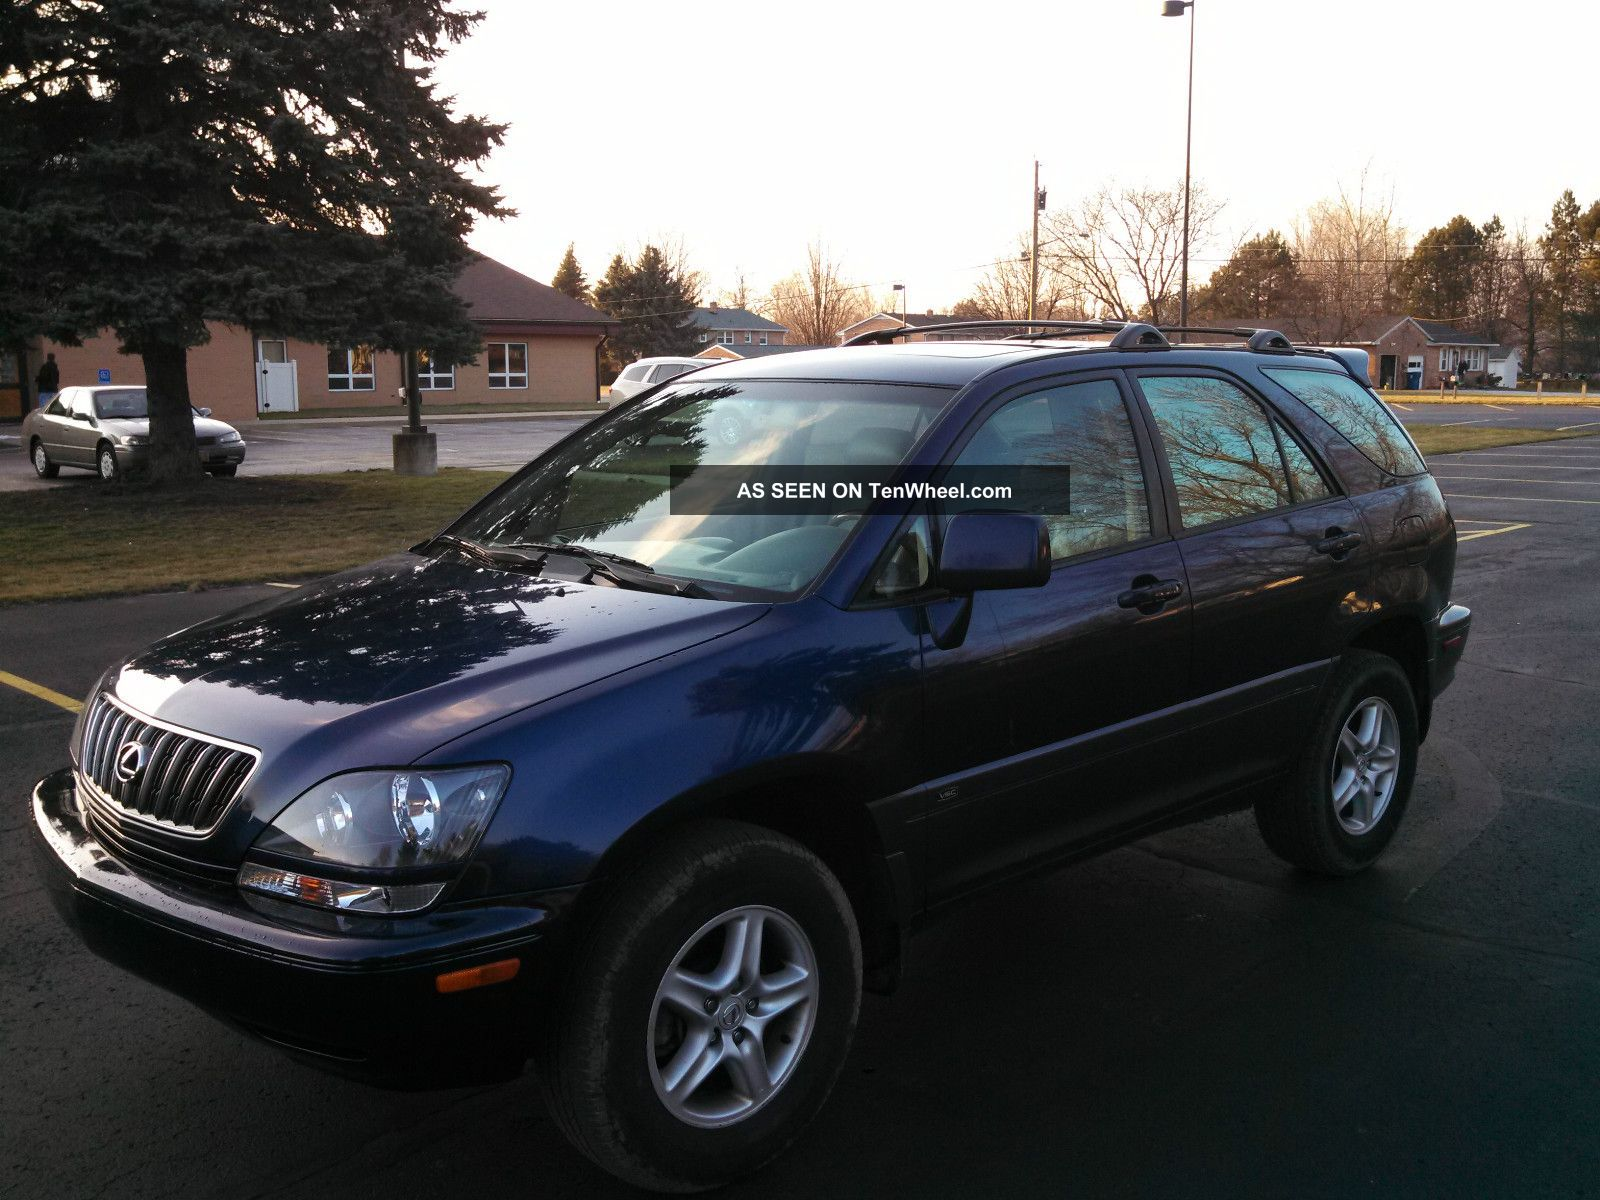 2001 lexus rx300 all wheel drive awd suv 3 0 liter 6. Black Bedroom Furniture Sets. Home Design Ideas